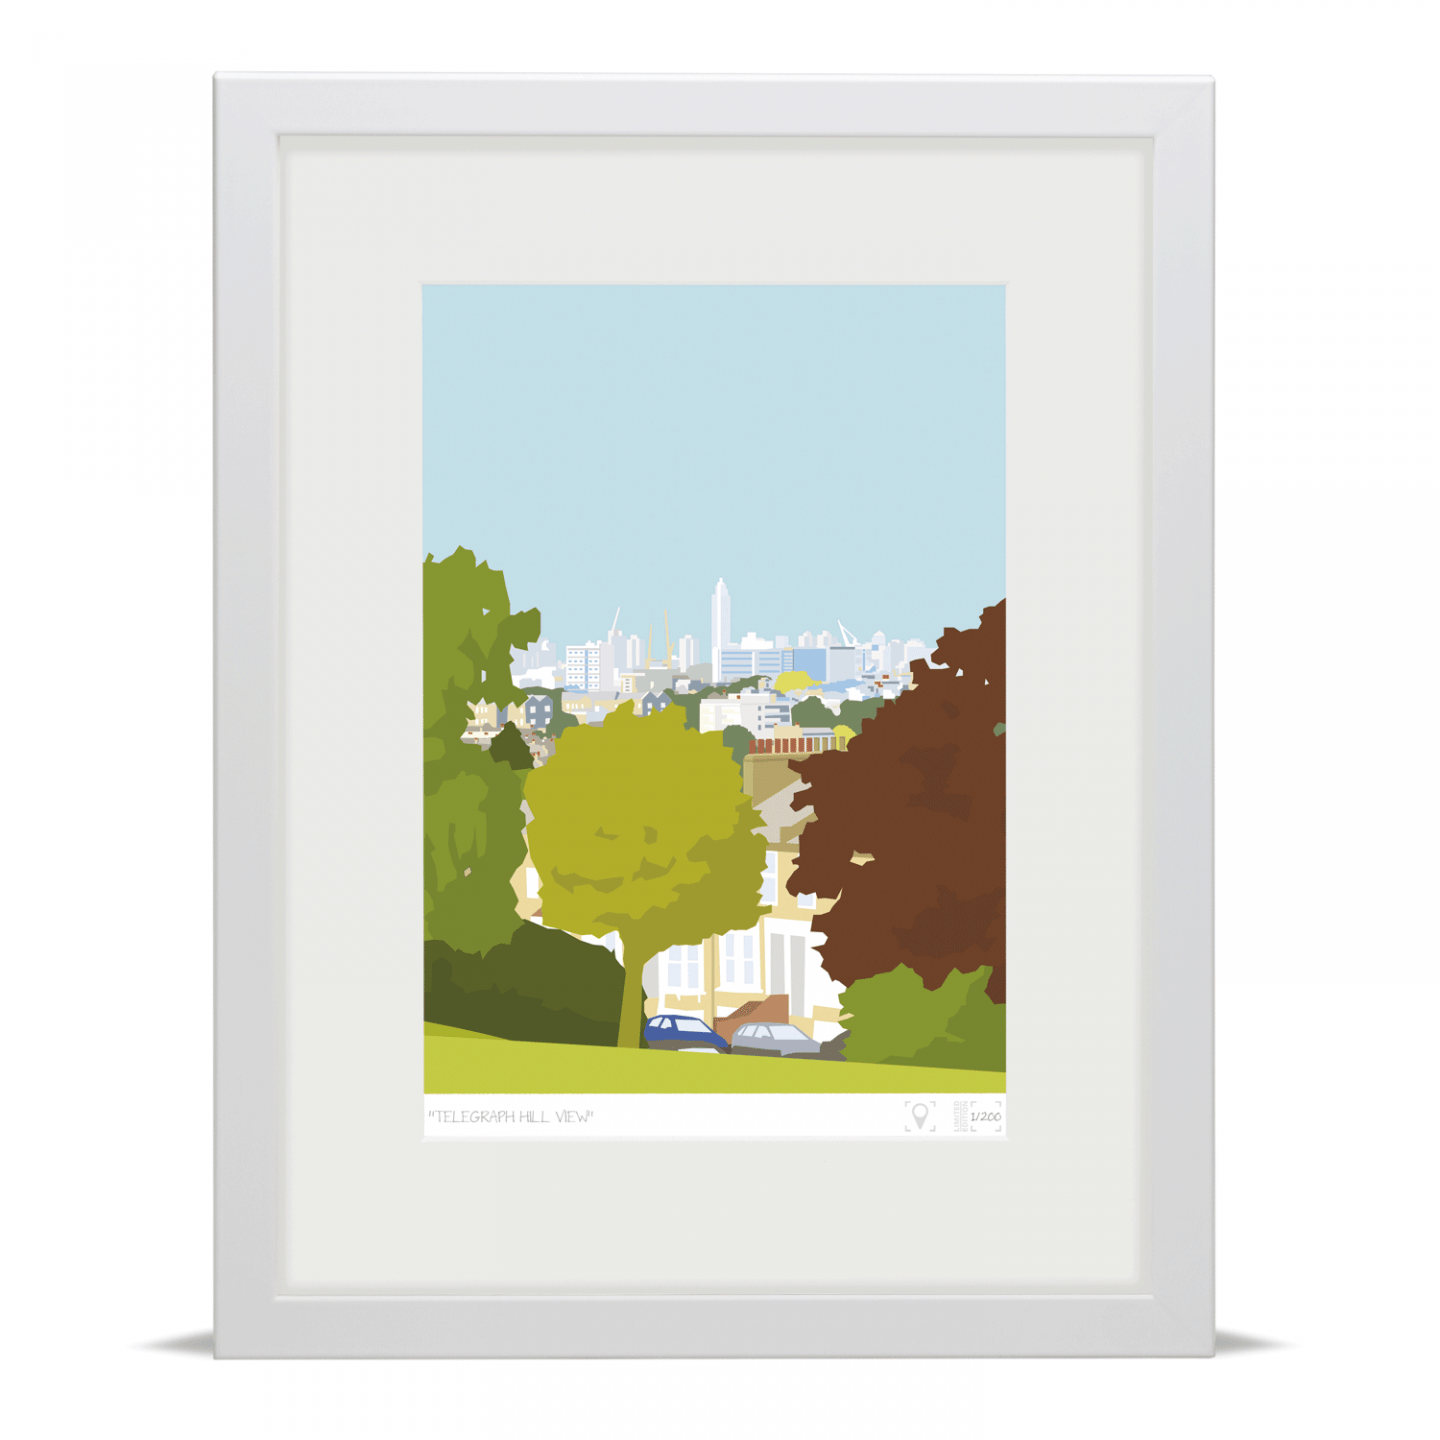 Place in Print Telegraph Hill View Brockley Art Print